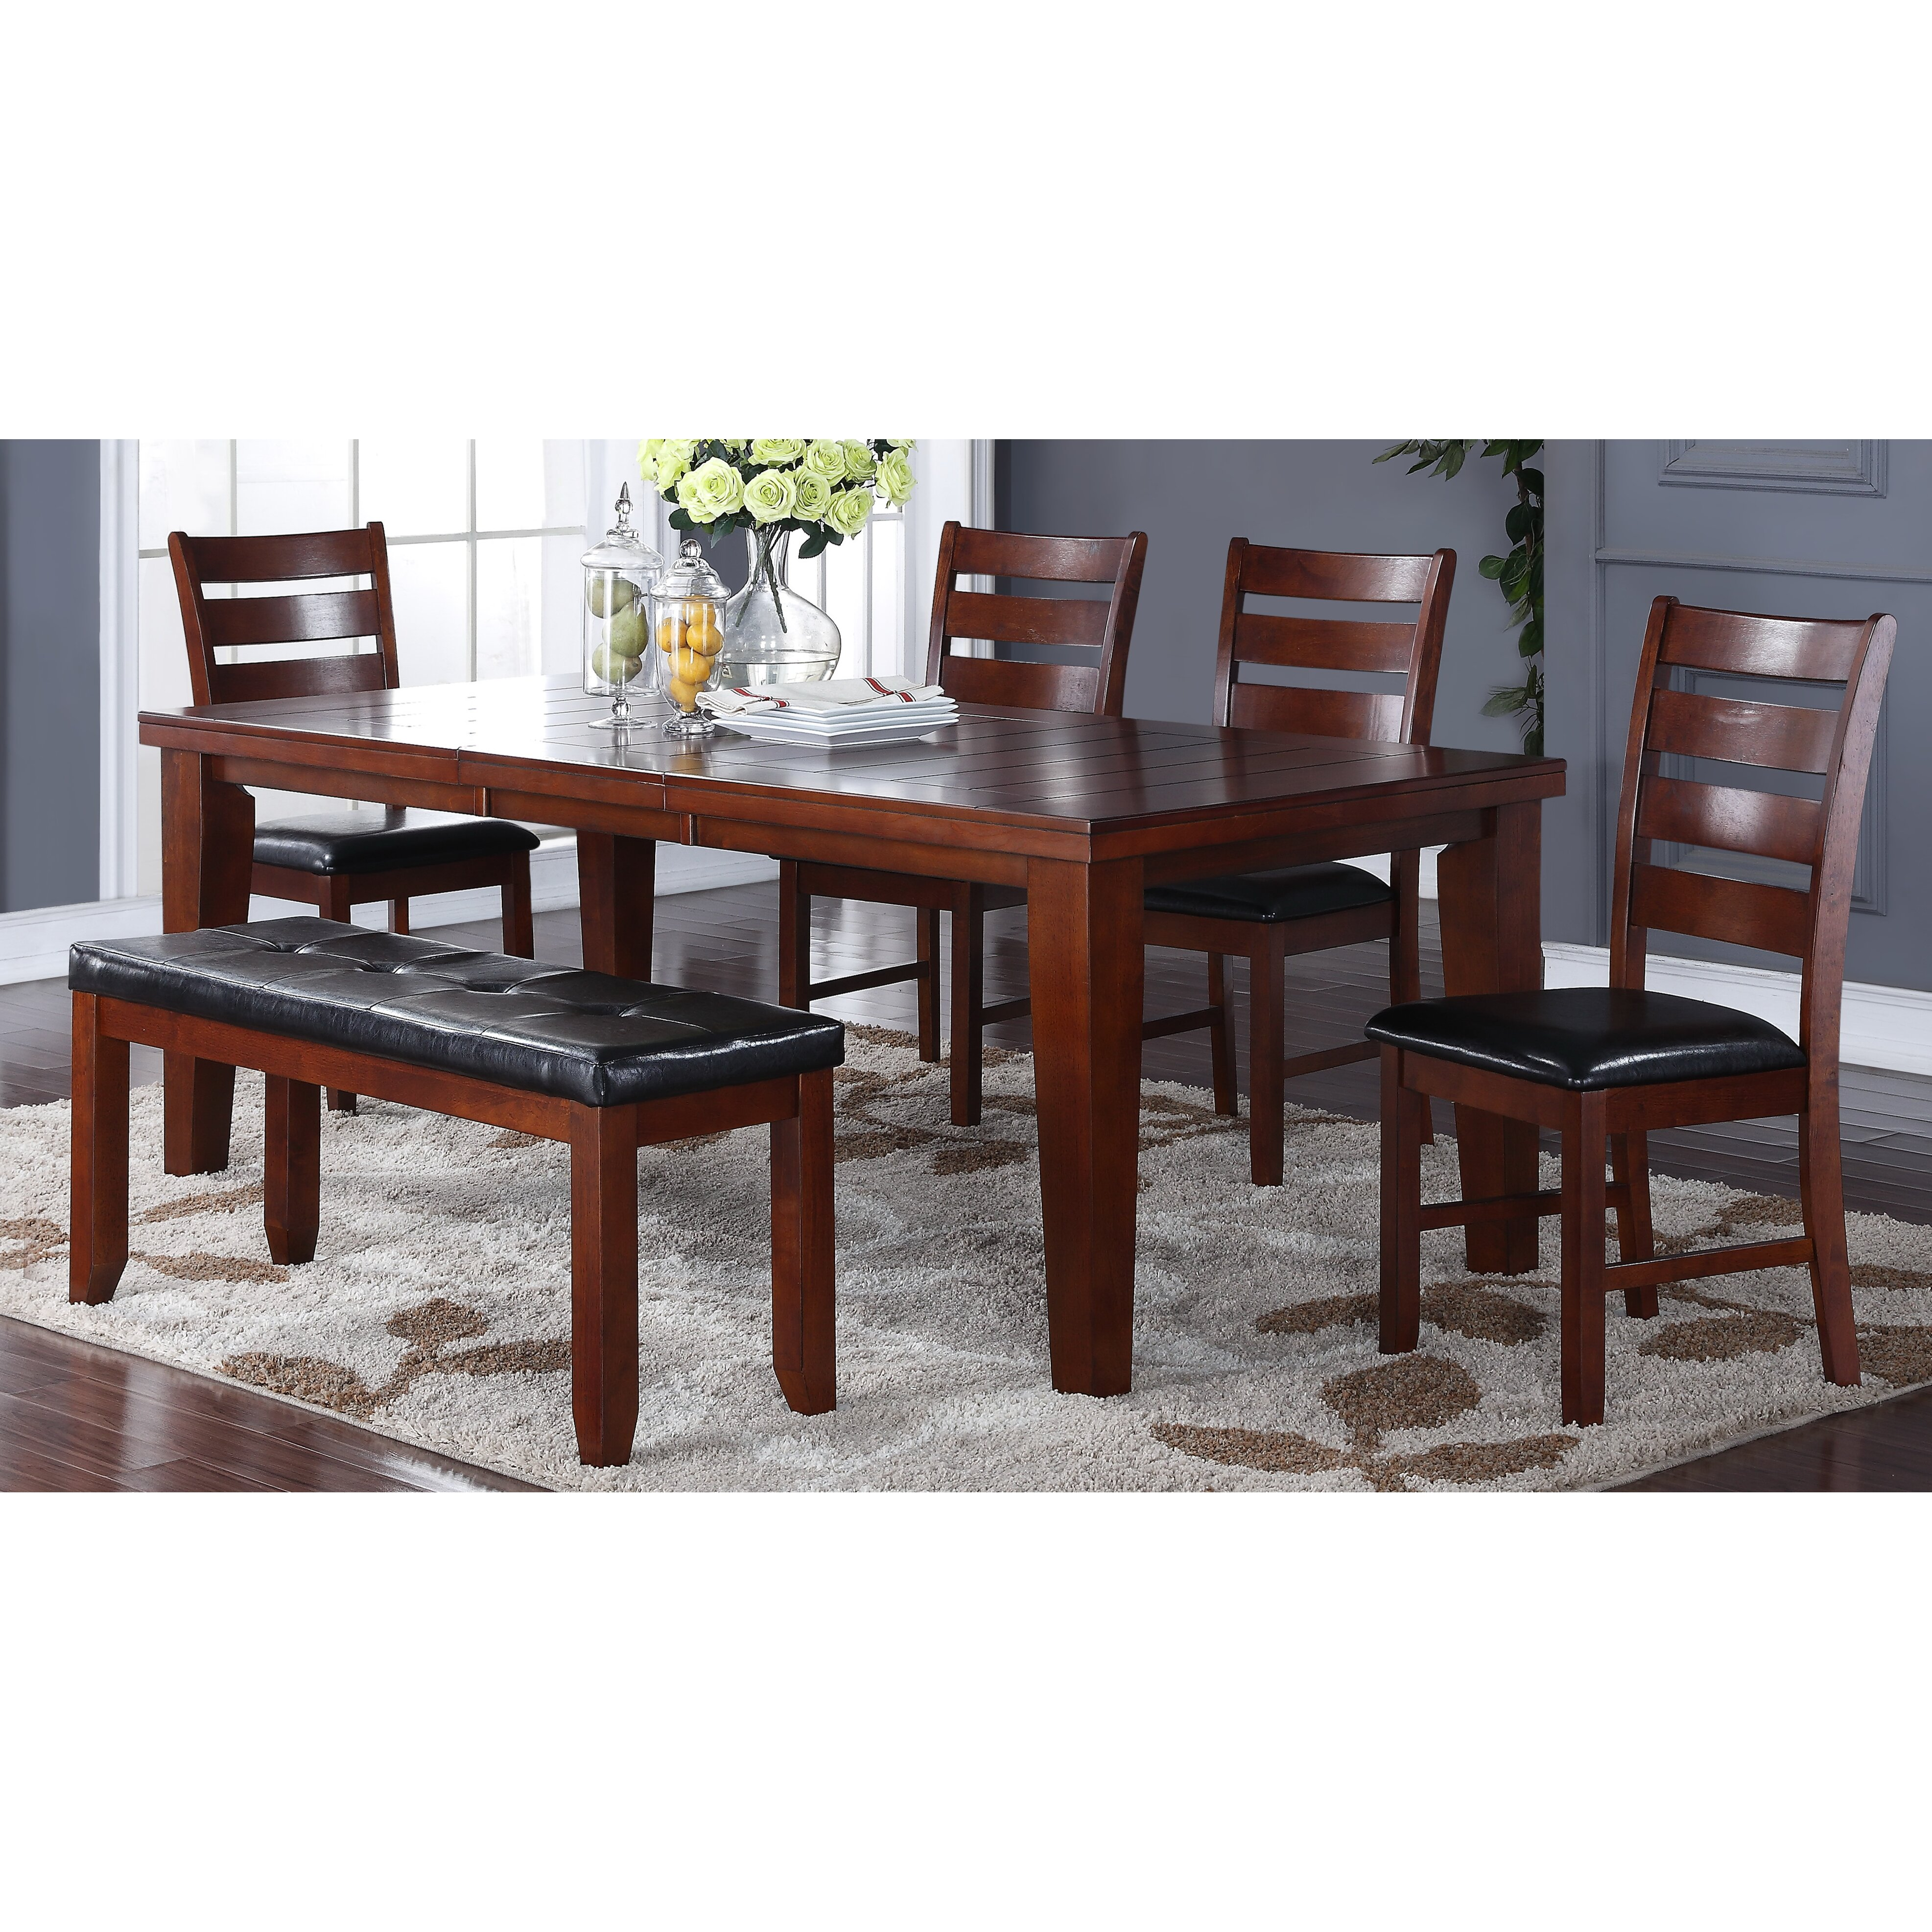 Living in style 6 piece dining set wayfair for 6 piece living room set